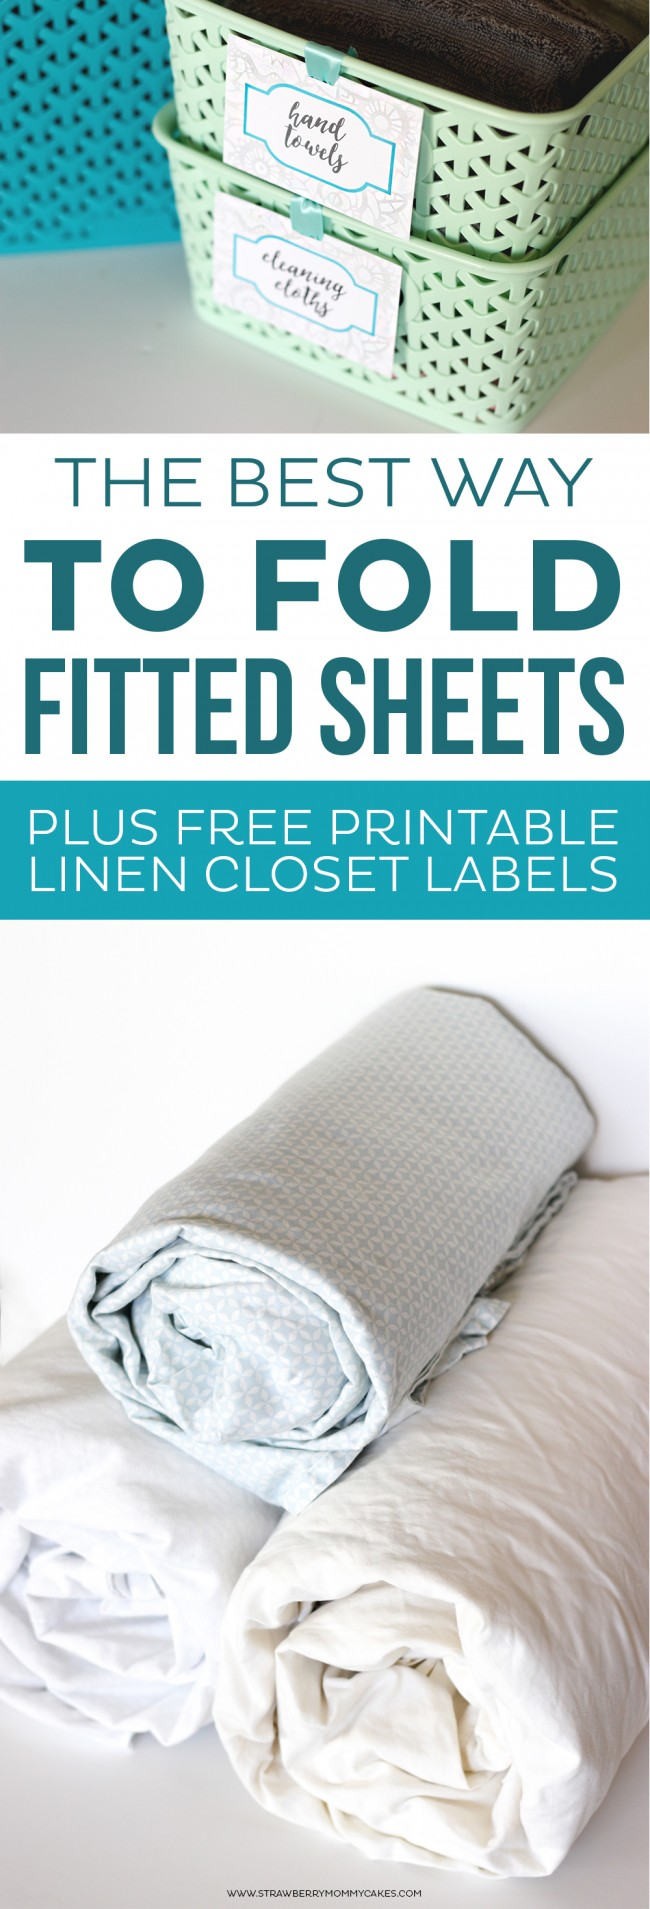 Want to learn the BEST Way to Fold Fitted Sheets? Here's a hint...YOU DON'T!